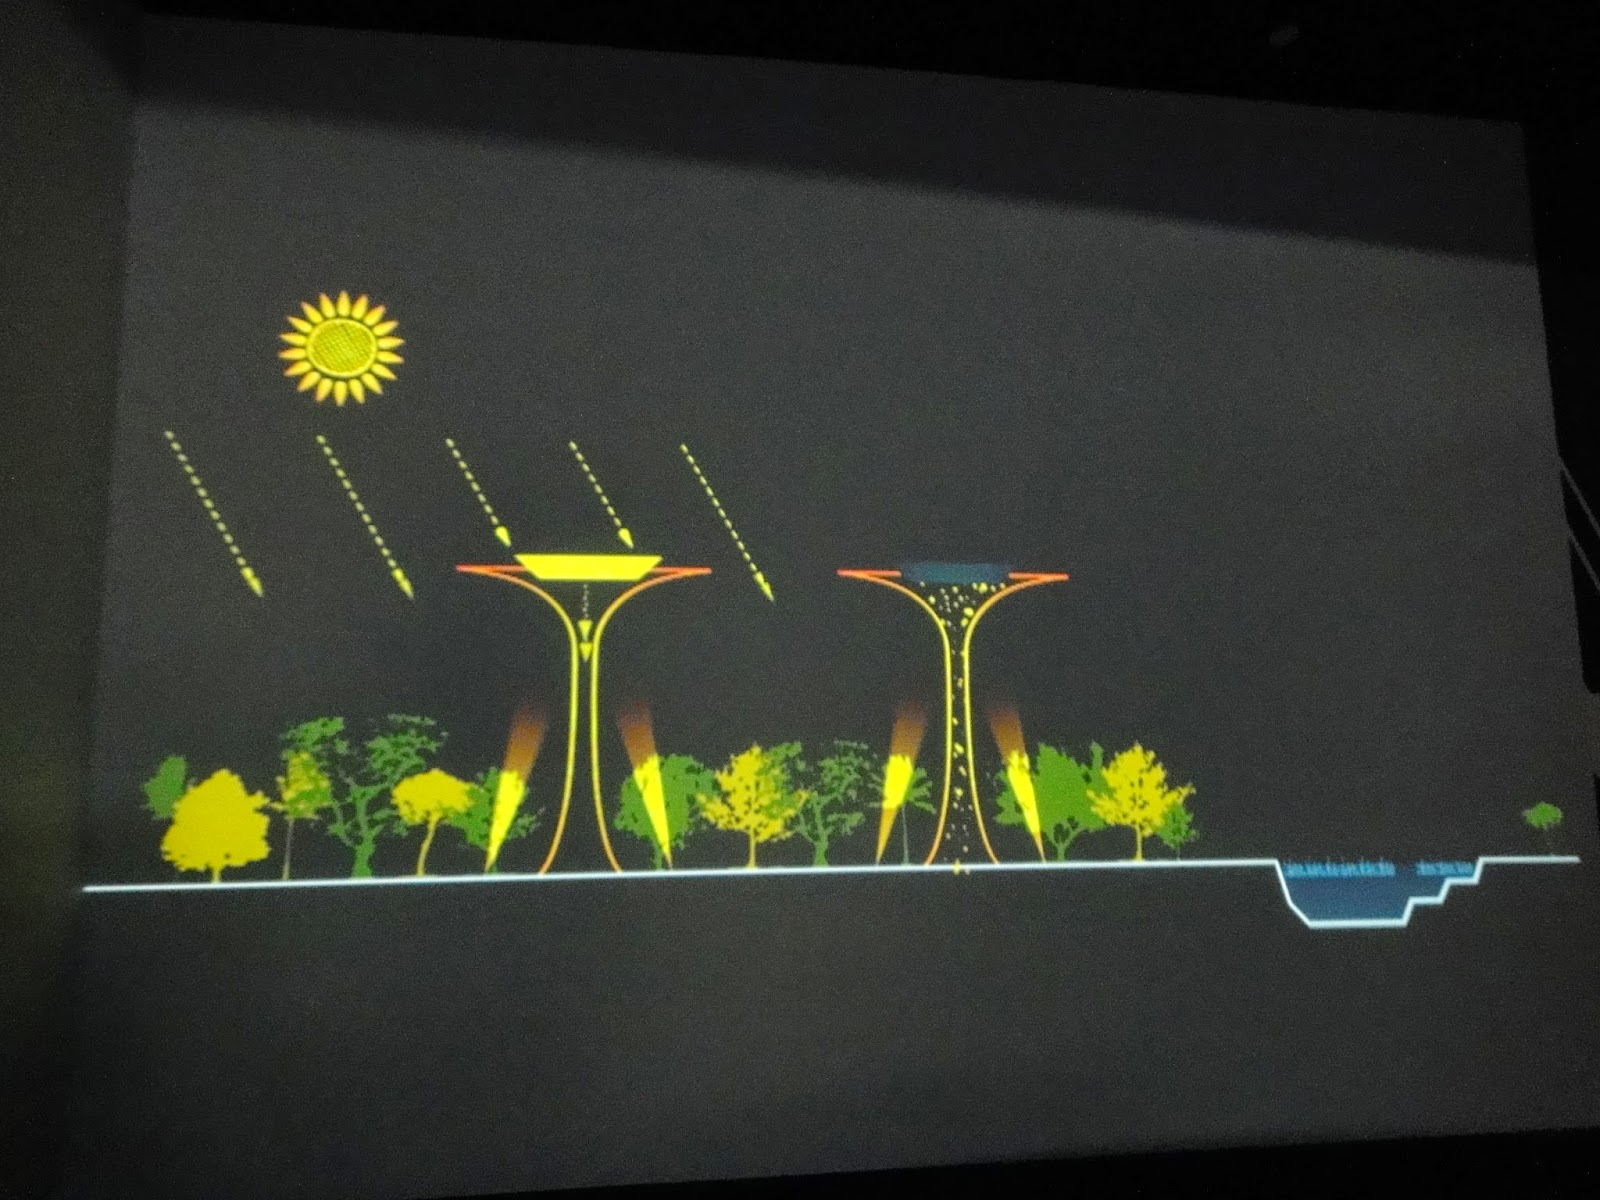 Documentary about design of Gardens by the Bay